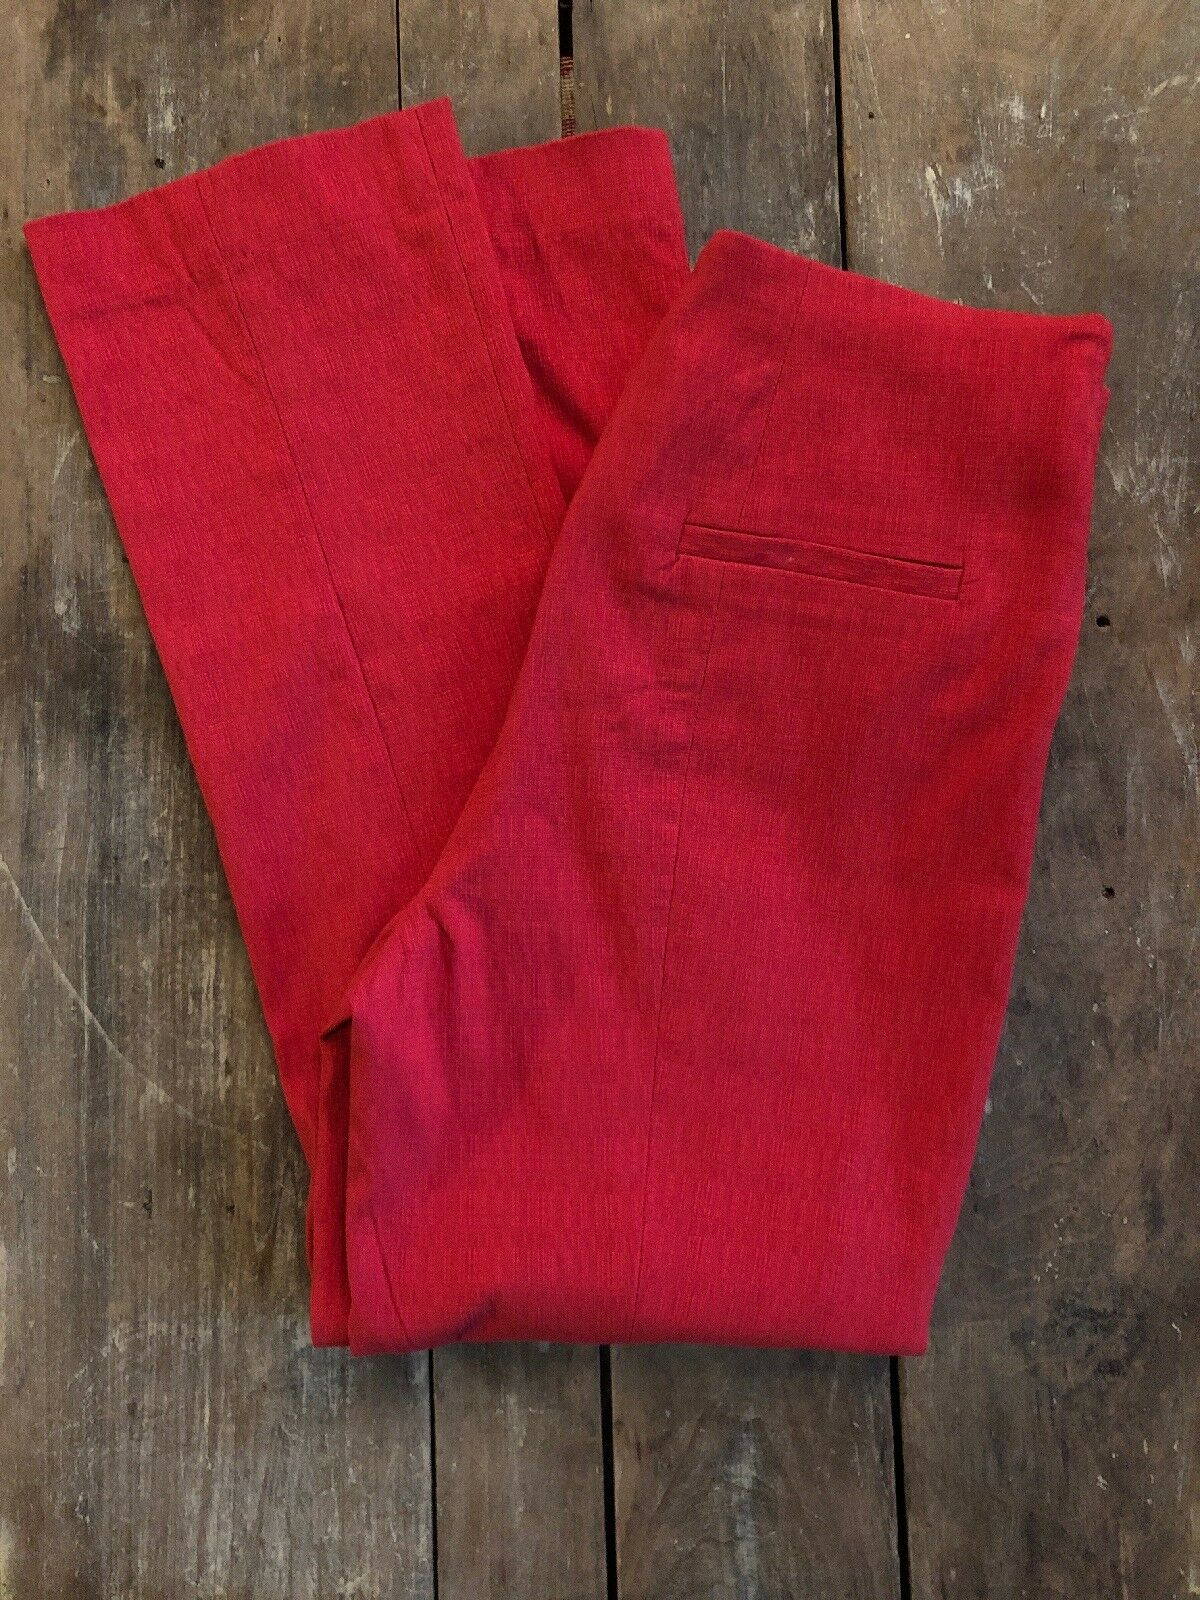 Anthropologie Pants Capri rot Stretch High Waisted Sz 6 NWT Corey Lynn Calter